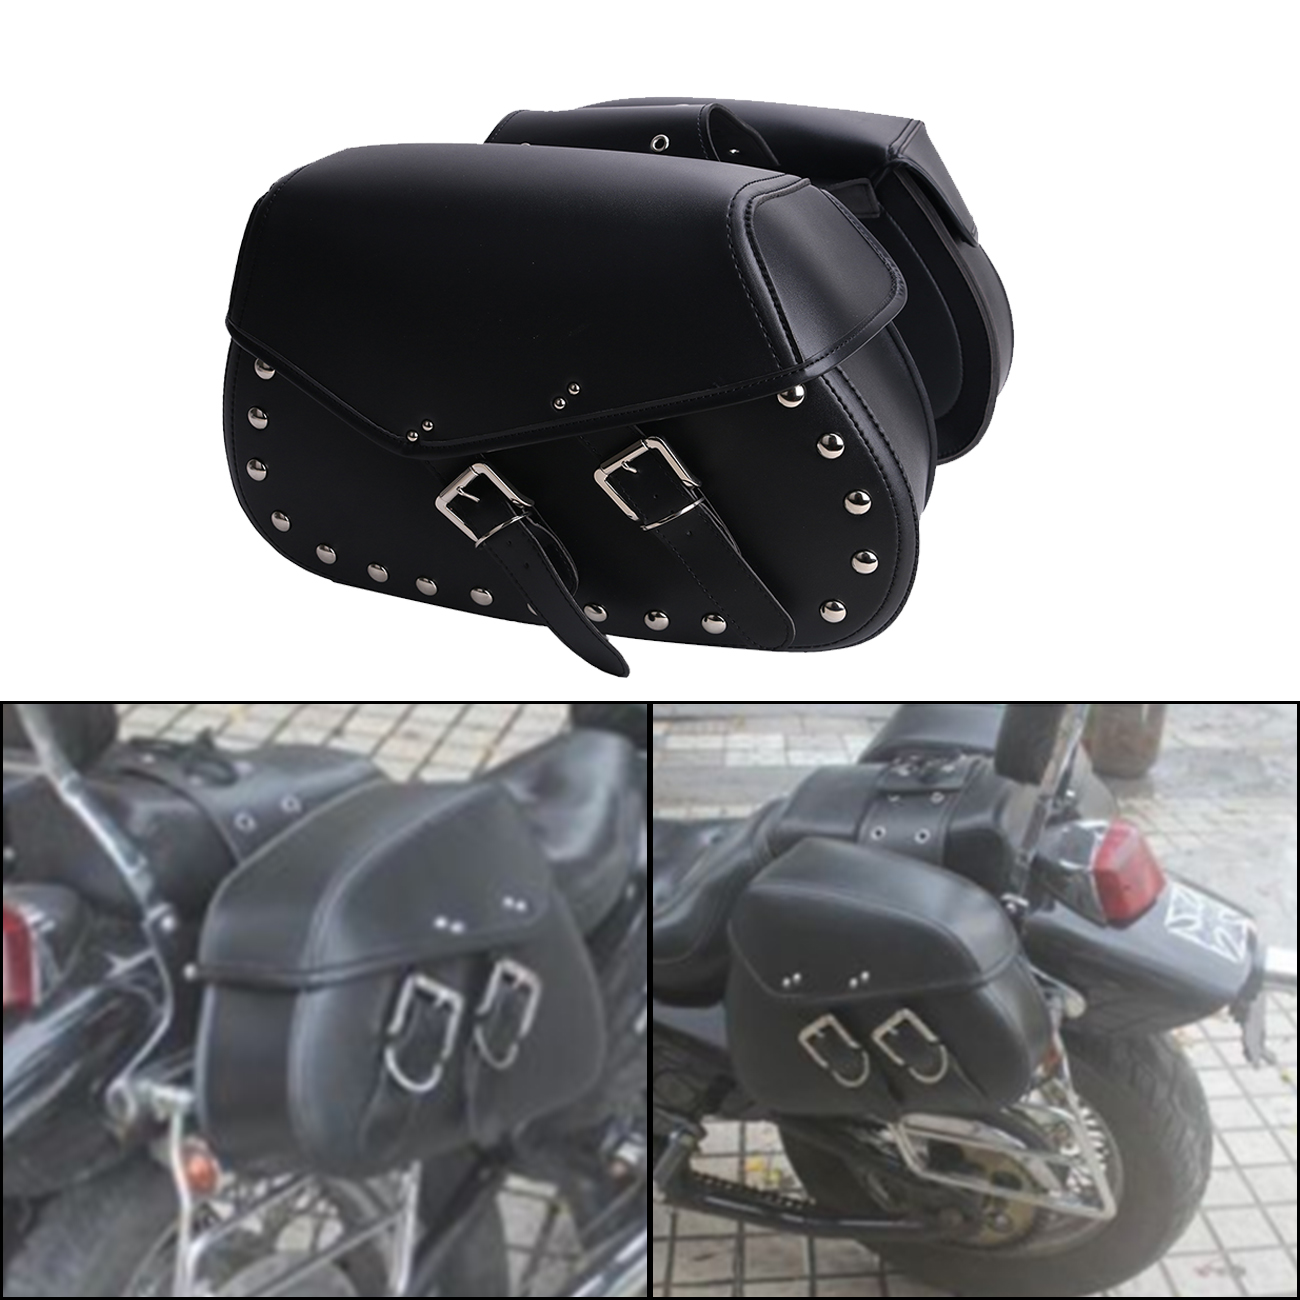 2x Punk Black Leather Rivet Motorcycle Saddle Bag Saddlebag Rider Motorbike Luggage For Harley Yamaha Honda Universal MBH258 for harley yamaha kawasaki honda 1 pair universal motorcycle saddle bags pu leather bag side outdoor tool bags storage undefined